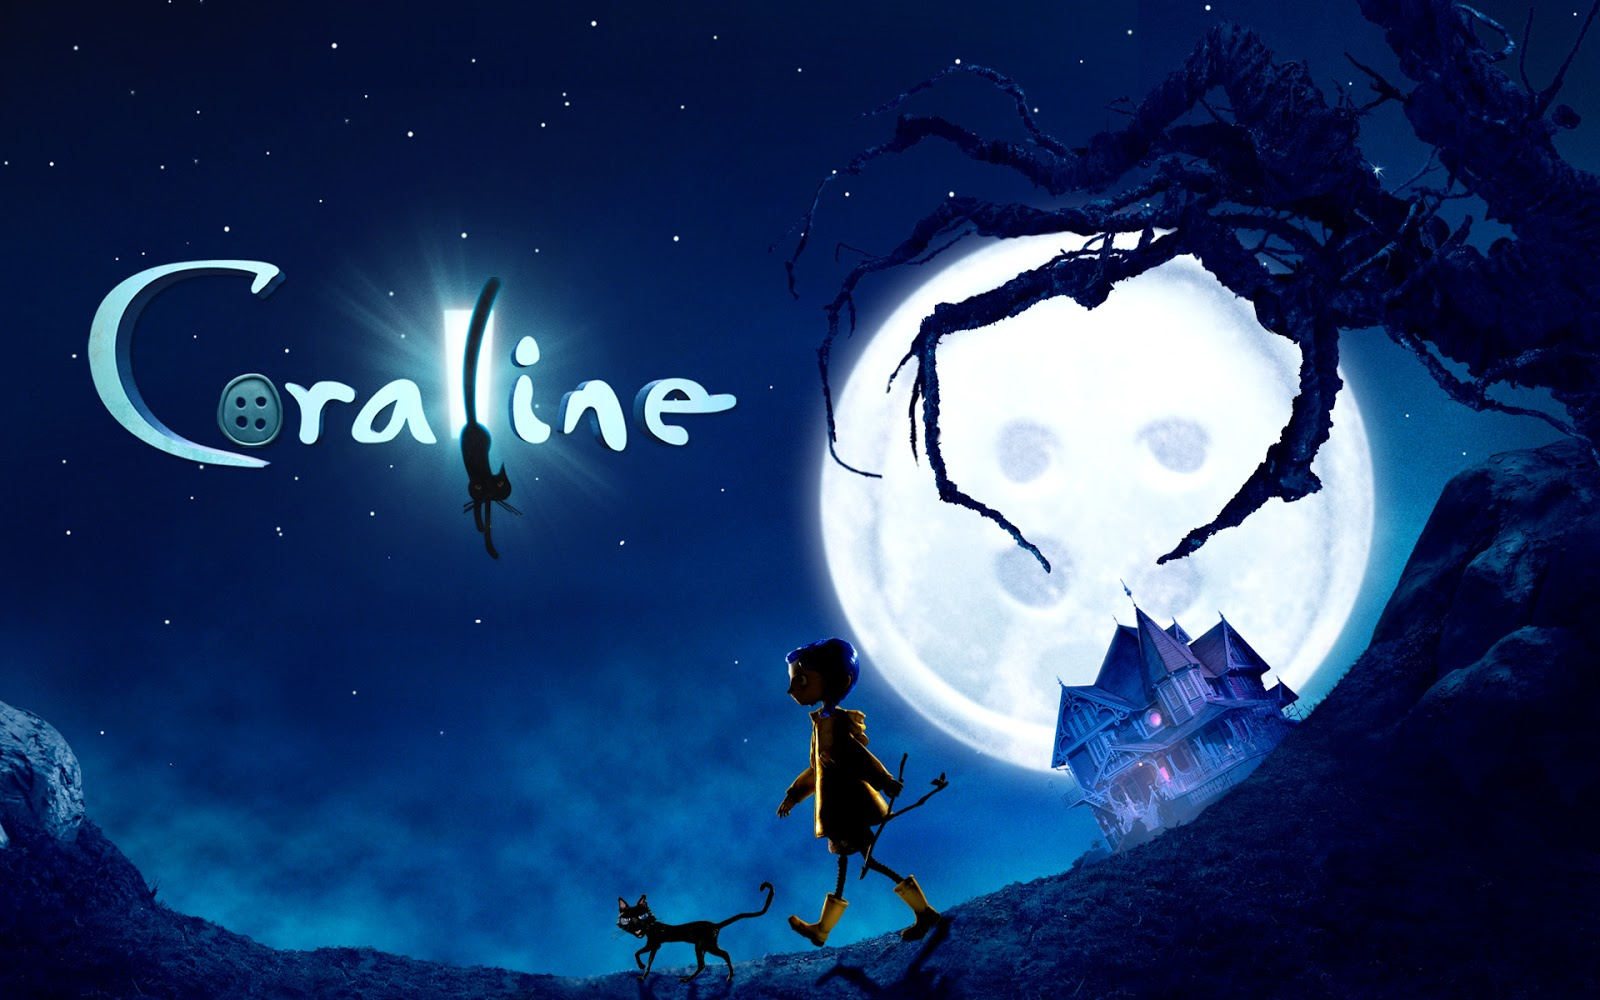 Brenna S Writing For The World Coraline Review